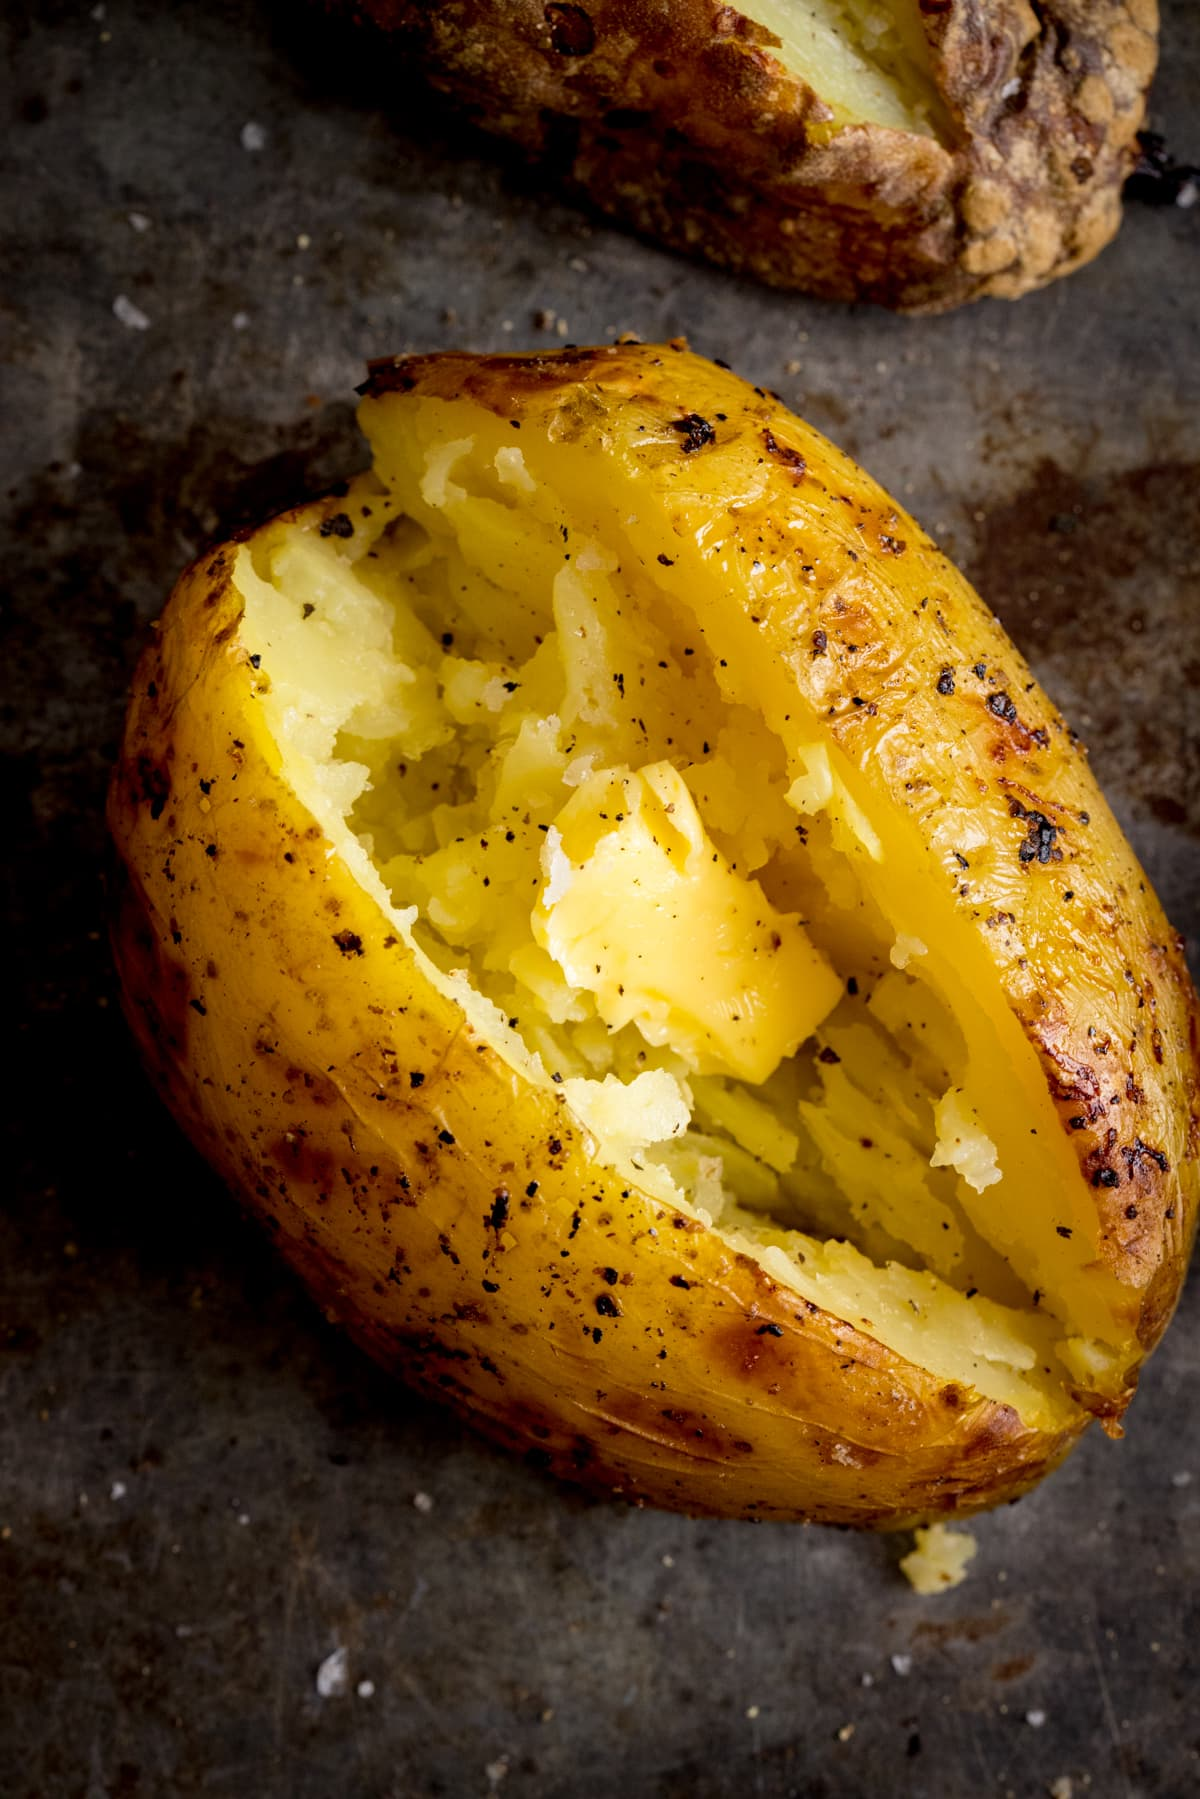 Overhead image of an open baked potato on a dark metal background. Potato was baked using method 8 of my baked potato experiment.